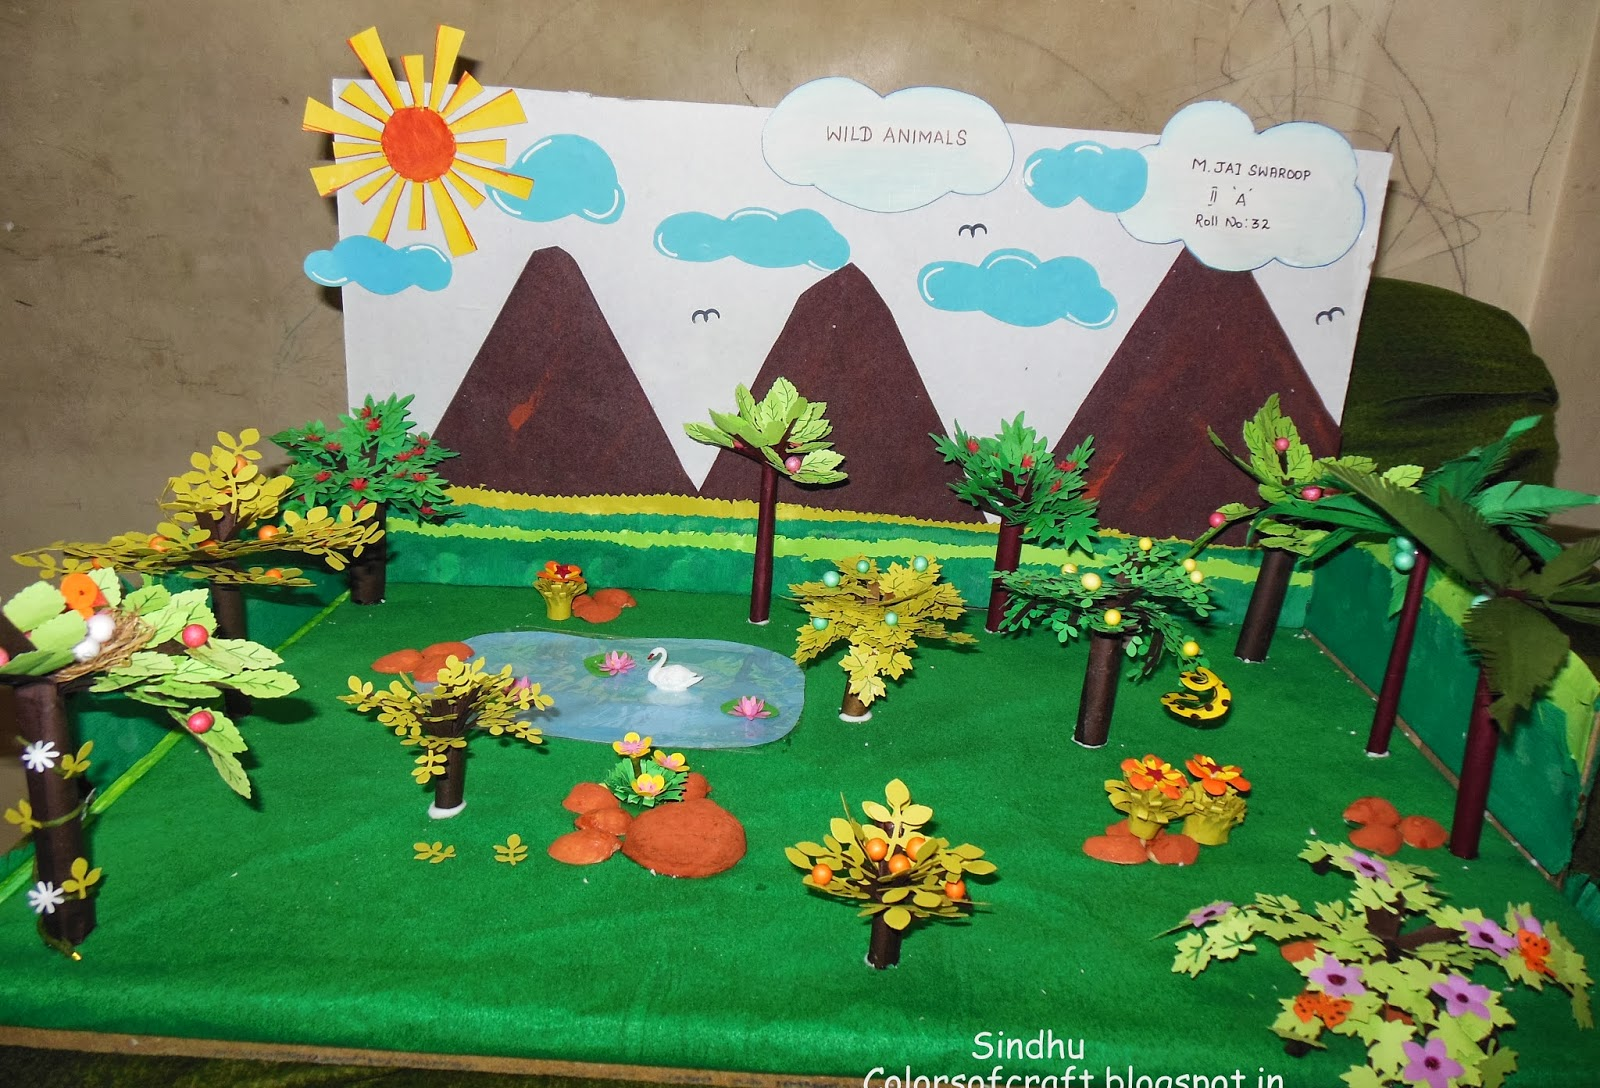 Colors of My Crafty World: Forest - School Project